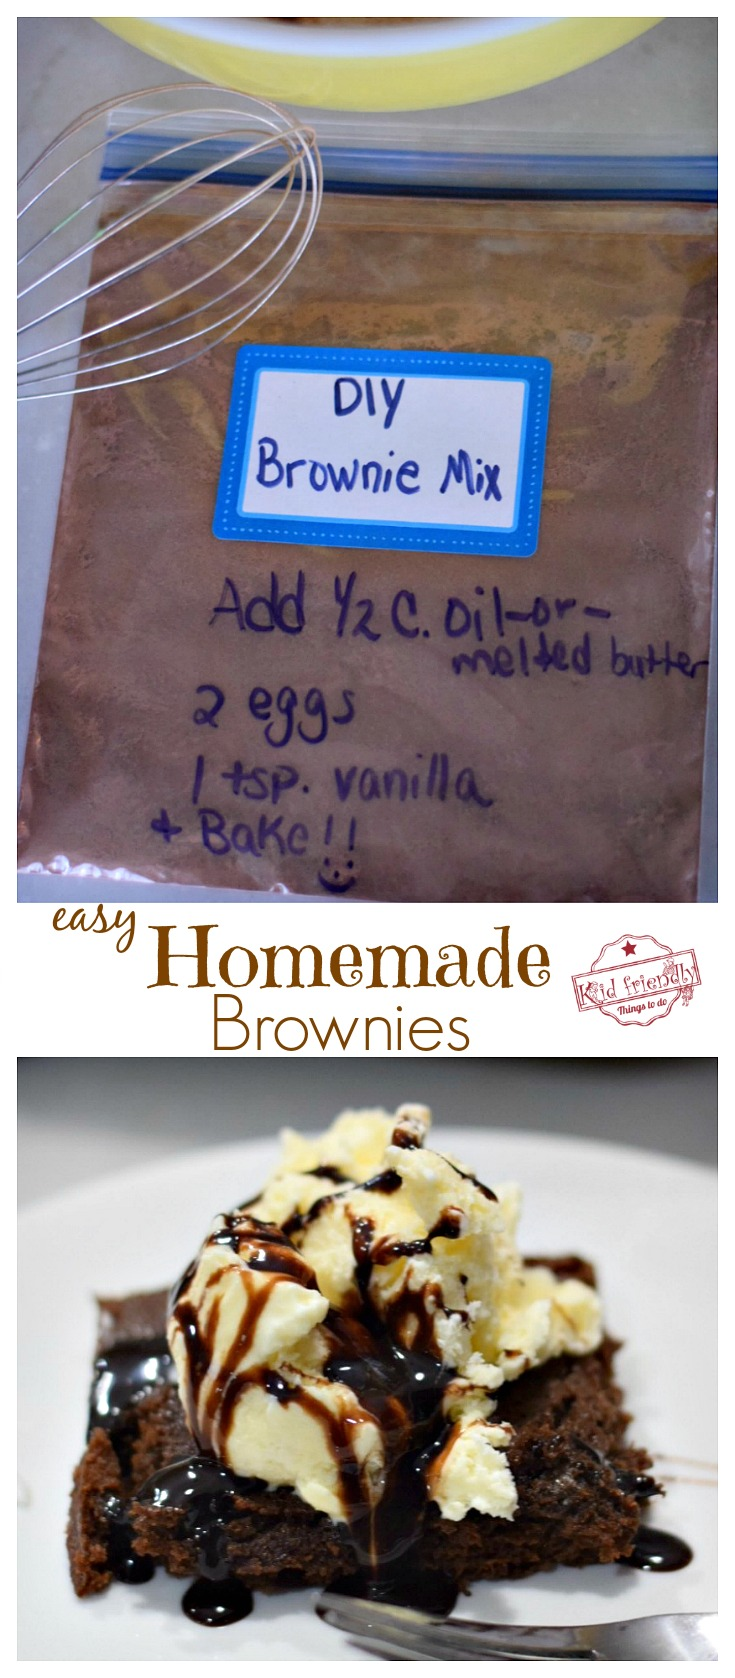 Supple Easy Homemade Brownies Recipe Make Your Own Easy Brownie Mix Pot Brownie Mix America S Test Kitchen A Few Ingredients Easy Homemade Brownies Recipe Make Your Own Brownie Brownie Mix nice food Best Brownie Mix